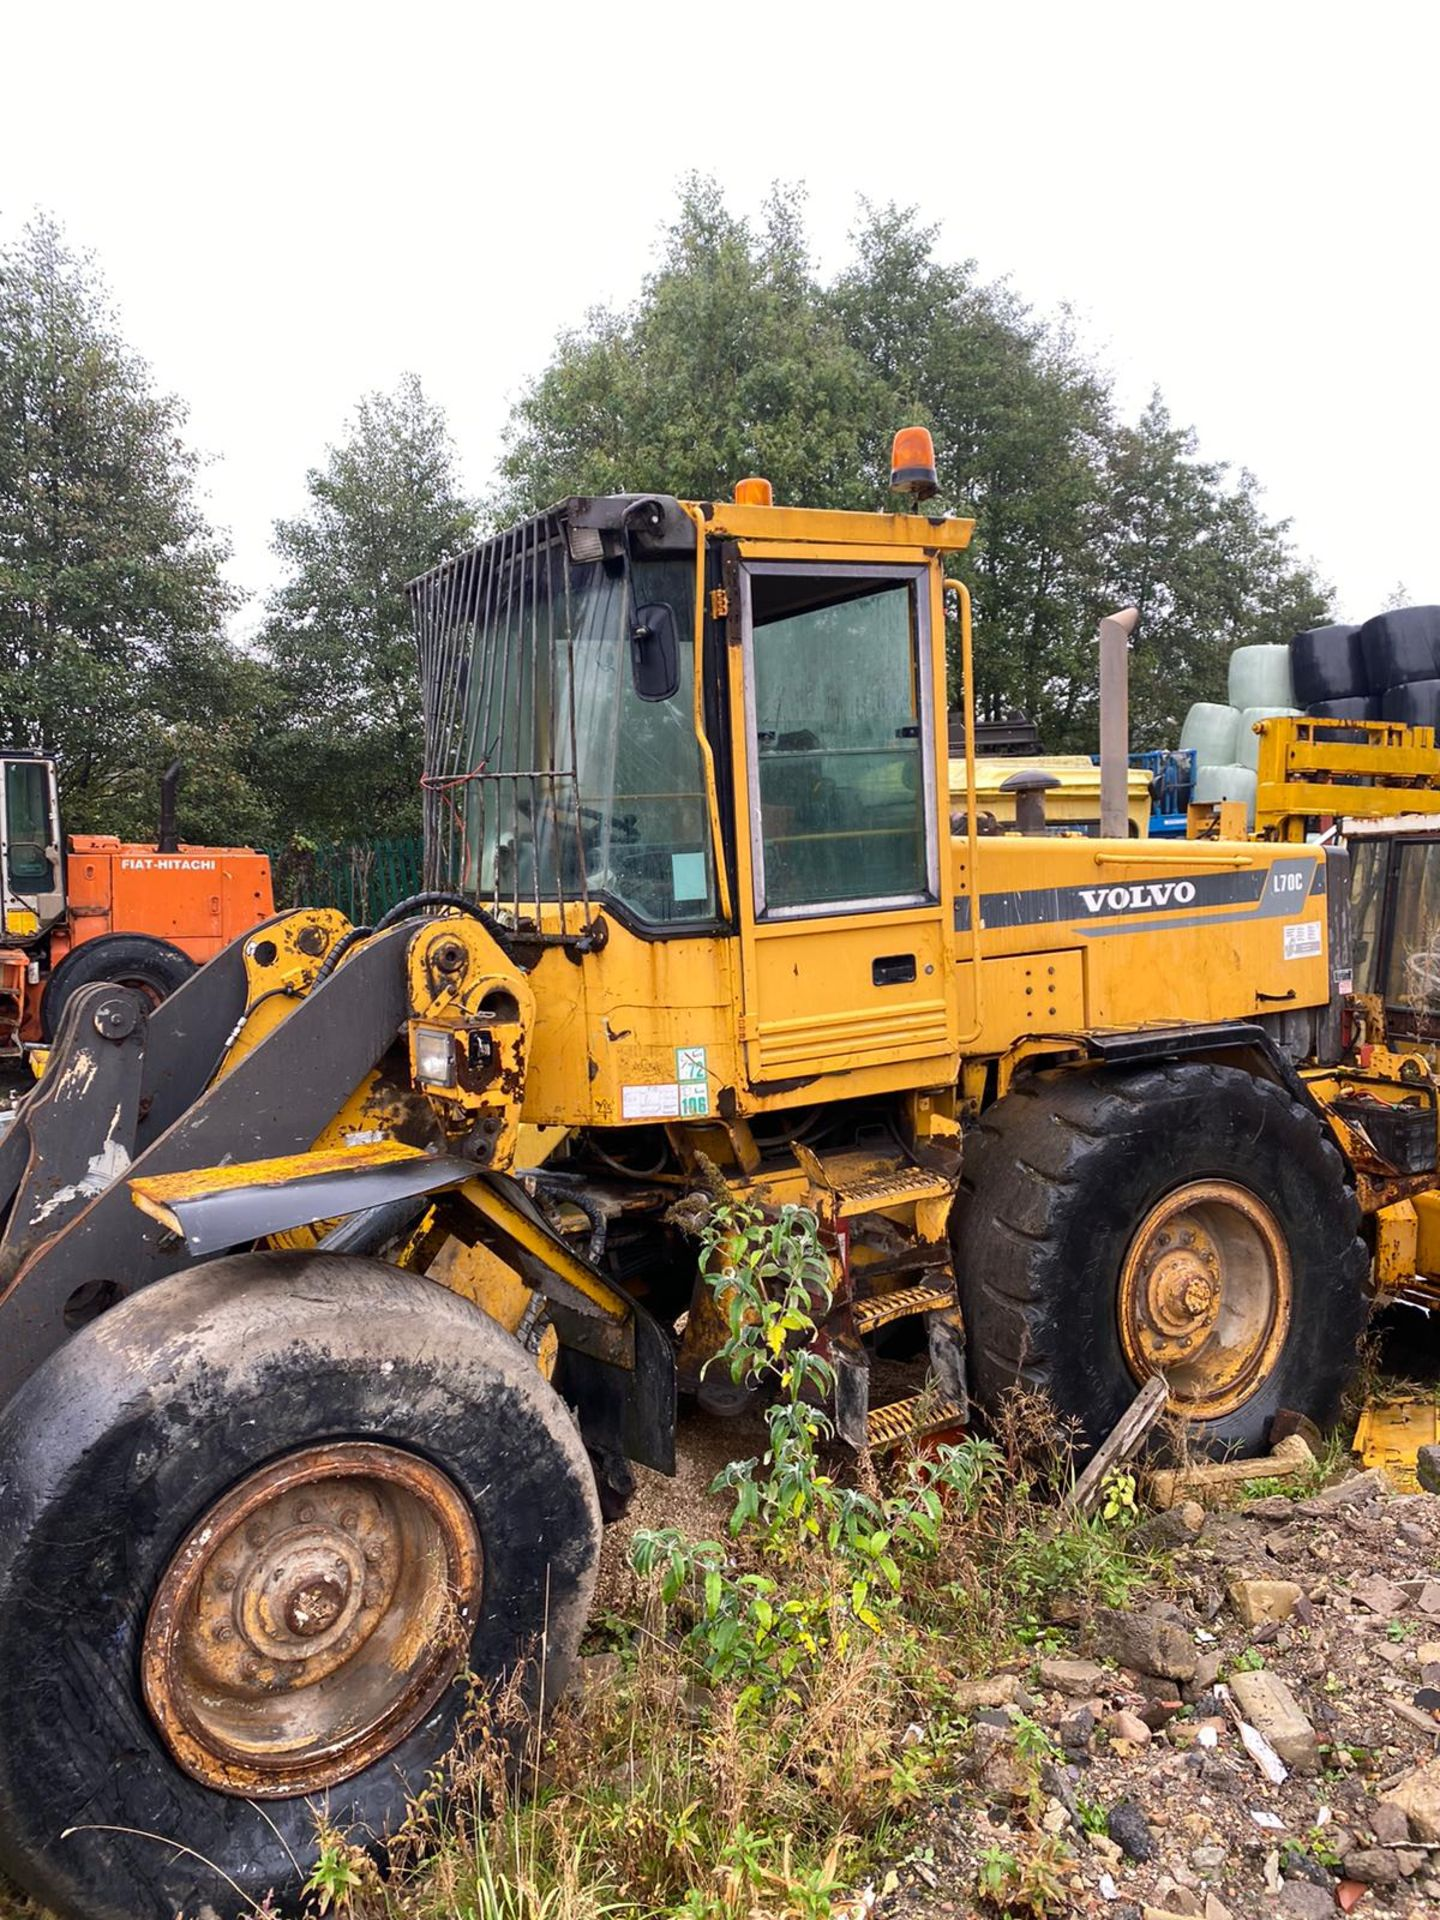 VOLVO L70C LOADING SHOVEL, RUNS AND LIFTS, BUT NO DASH LIGHTS SO FORWARD & REVERSE DONT WORK - Image 6 of 9